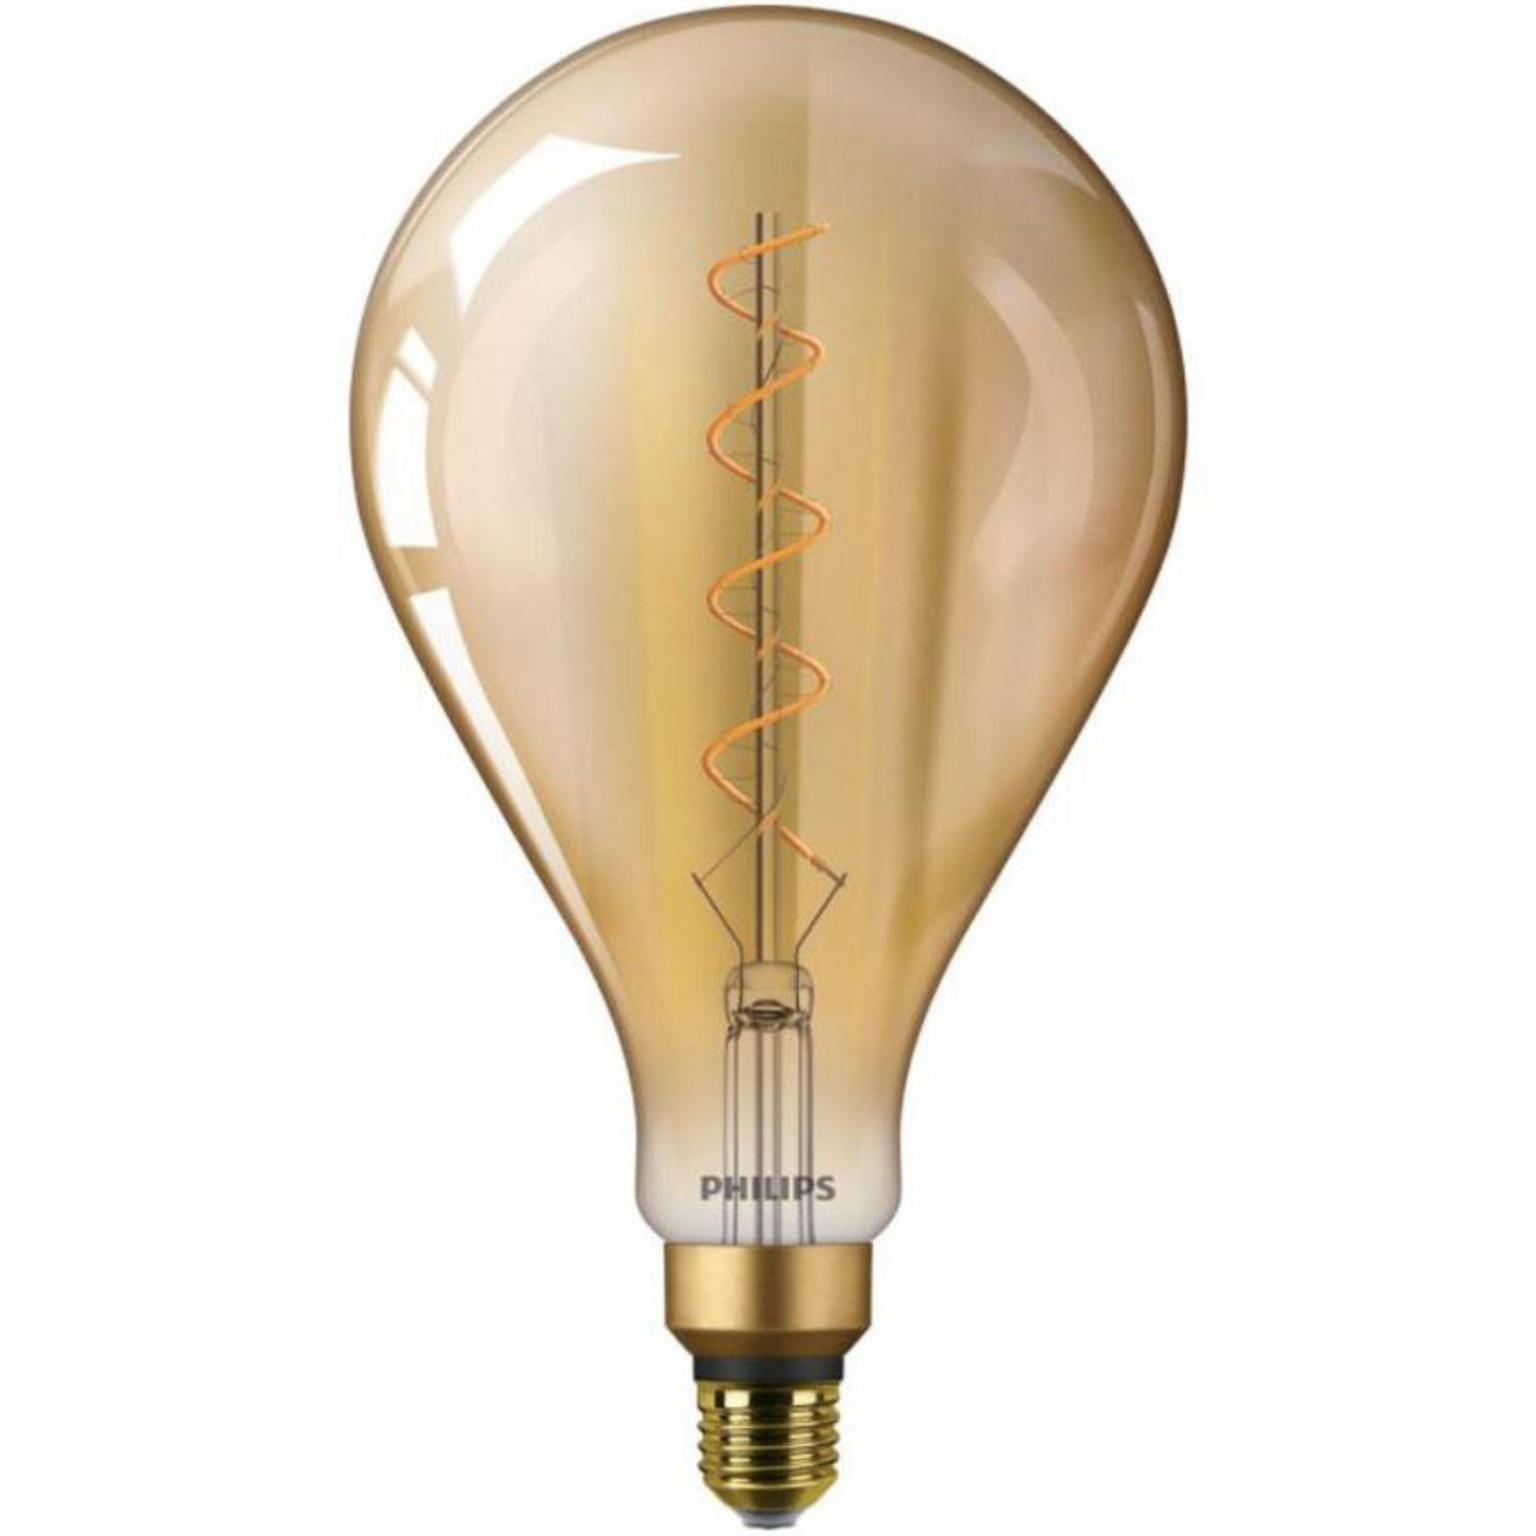 Filament Lamp - 300 lumen - Philips